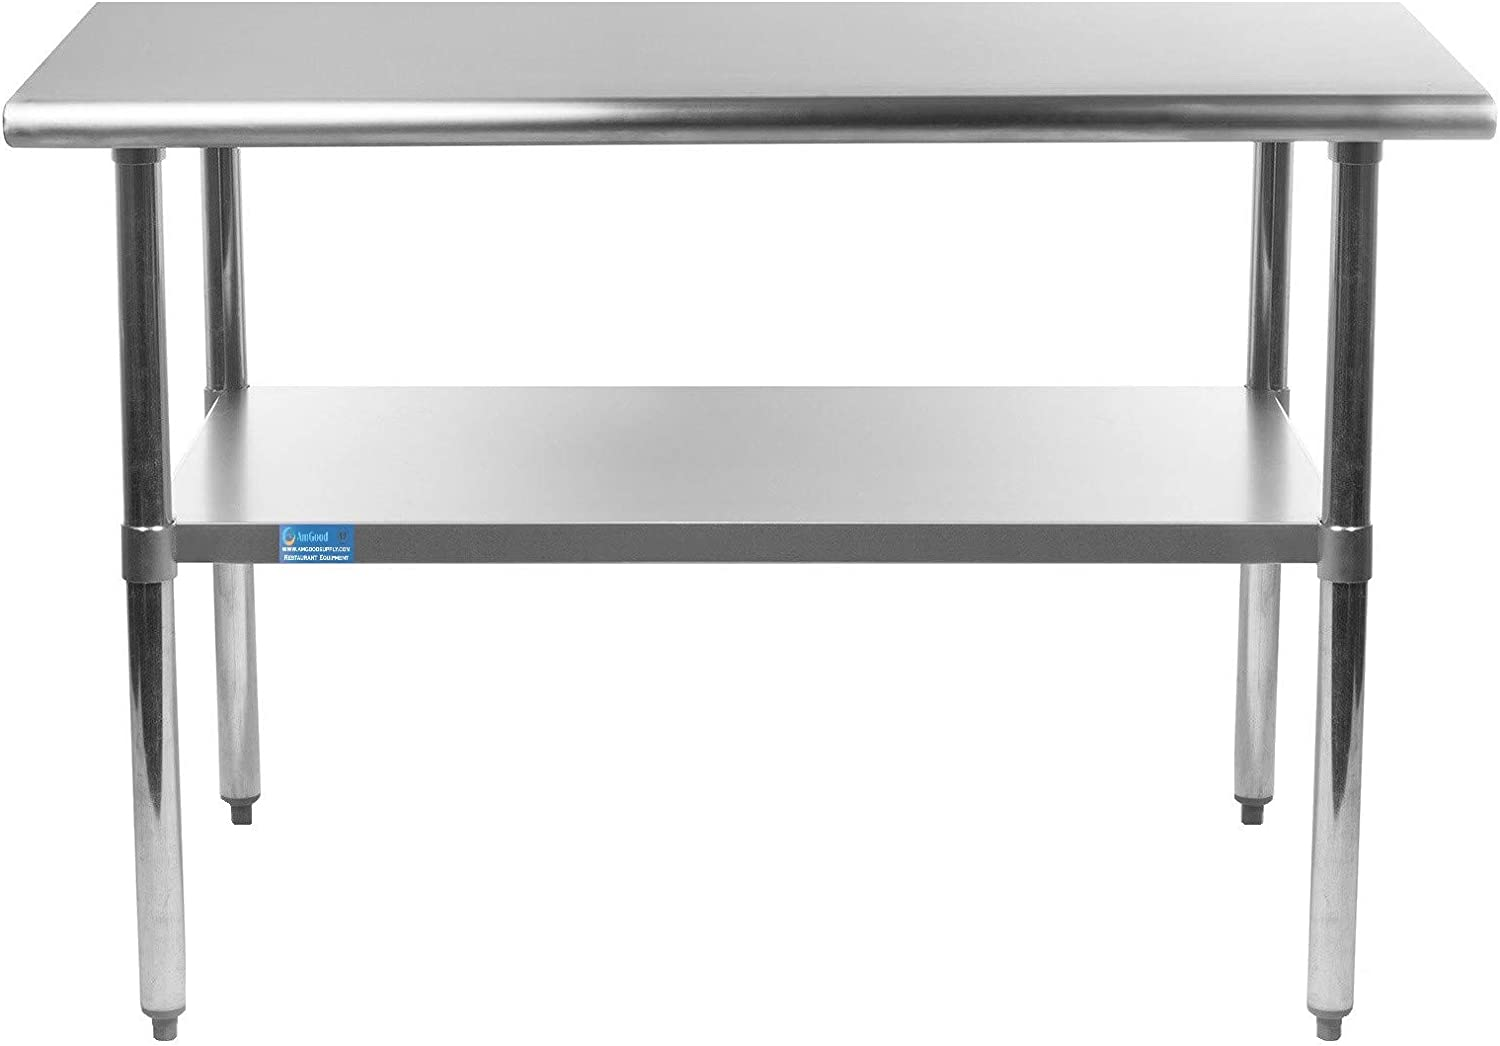 "AmGood 14"" X 30"" Stainless Steel Work Table with Undershelf 